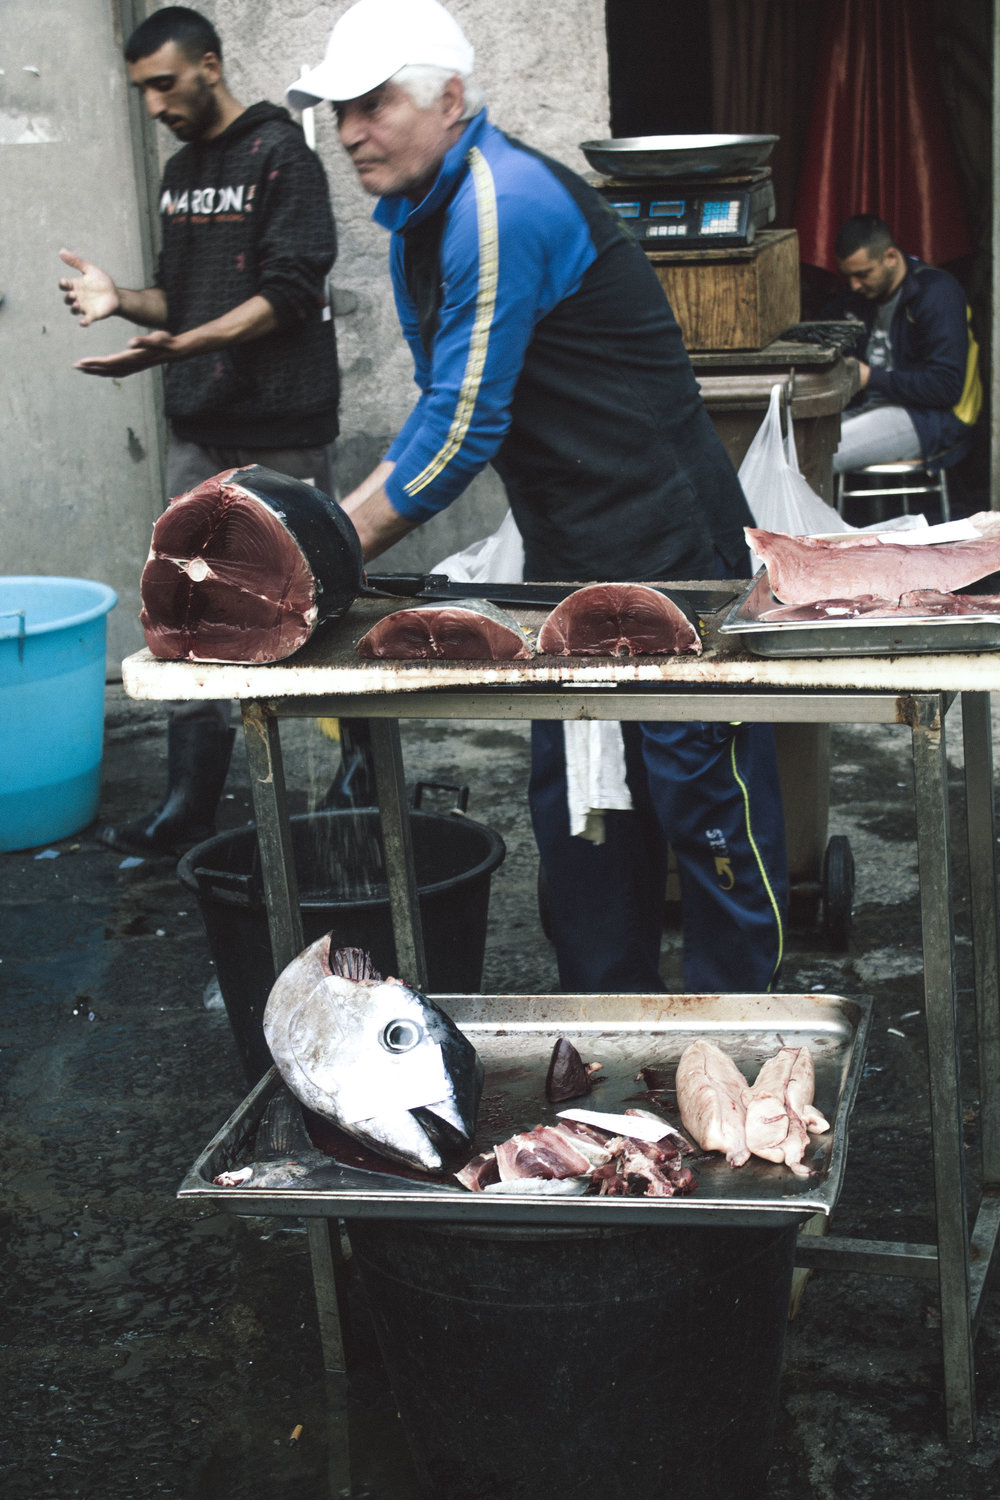 Vendors preparing their fish at La Pescheria, Catania, Sicily